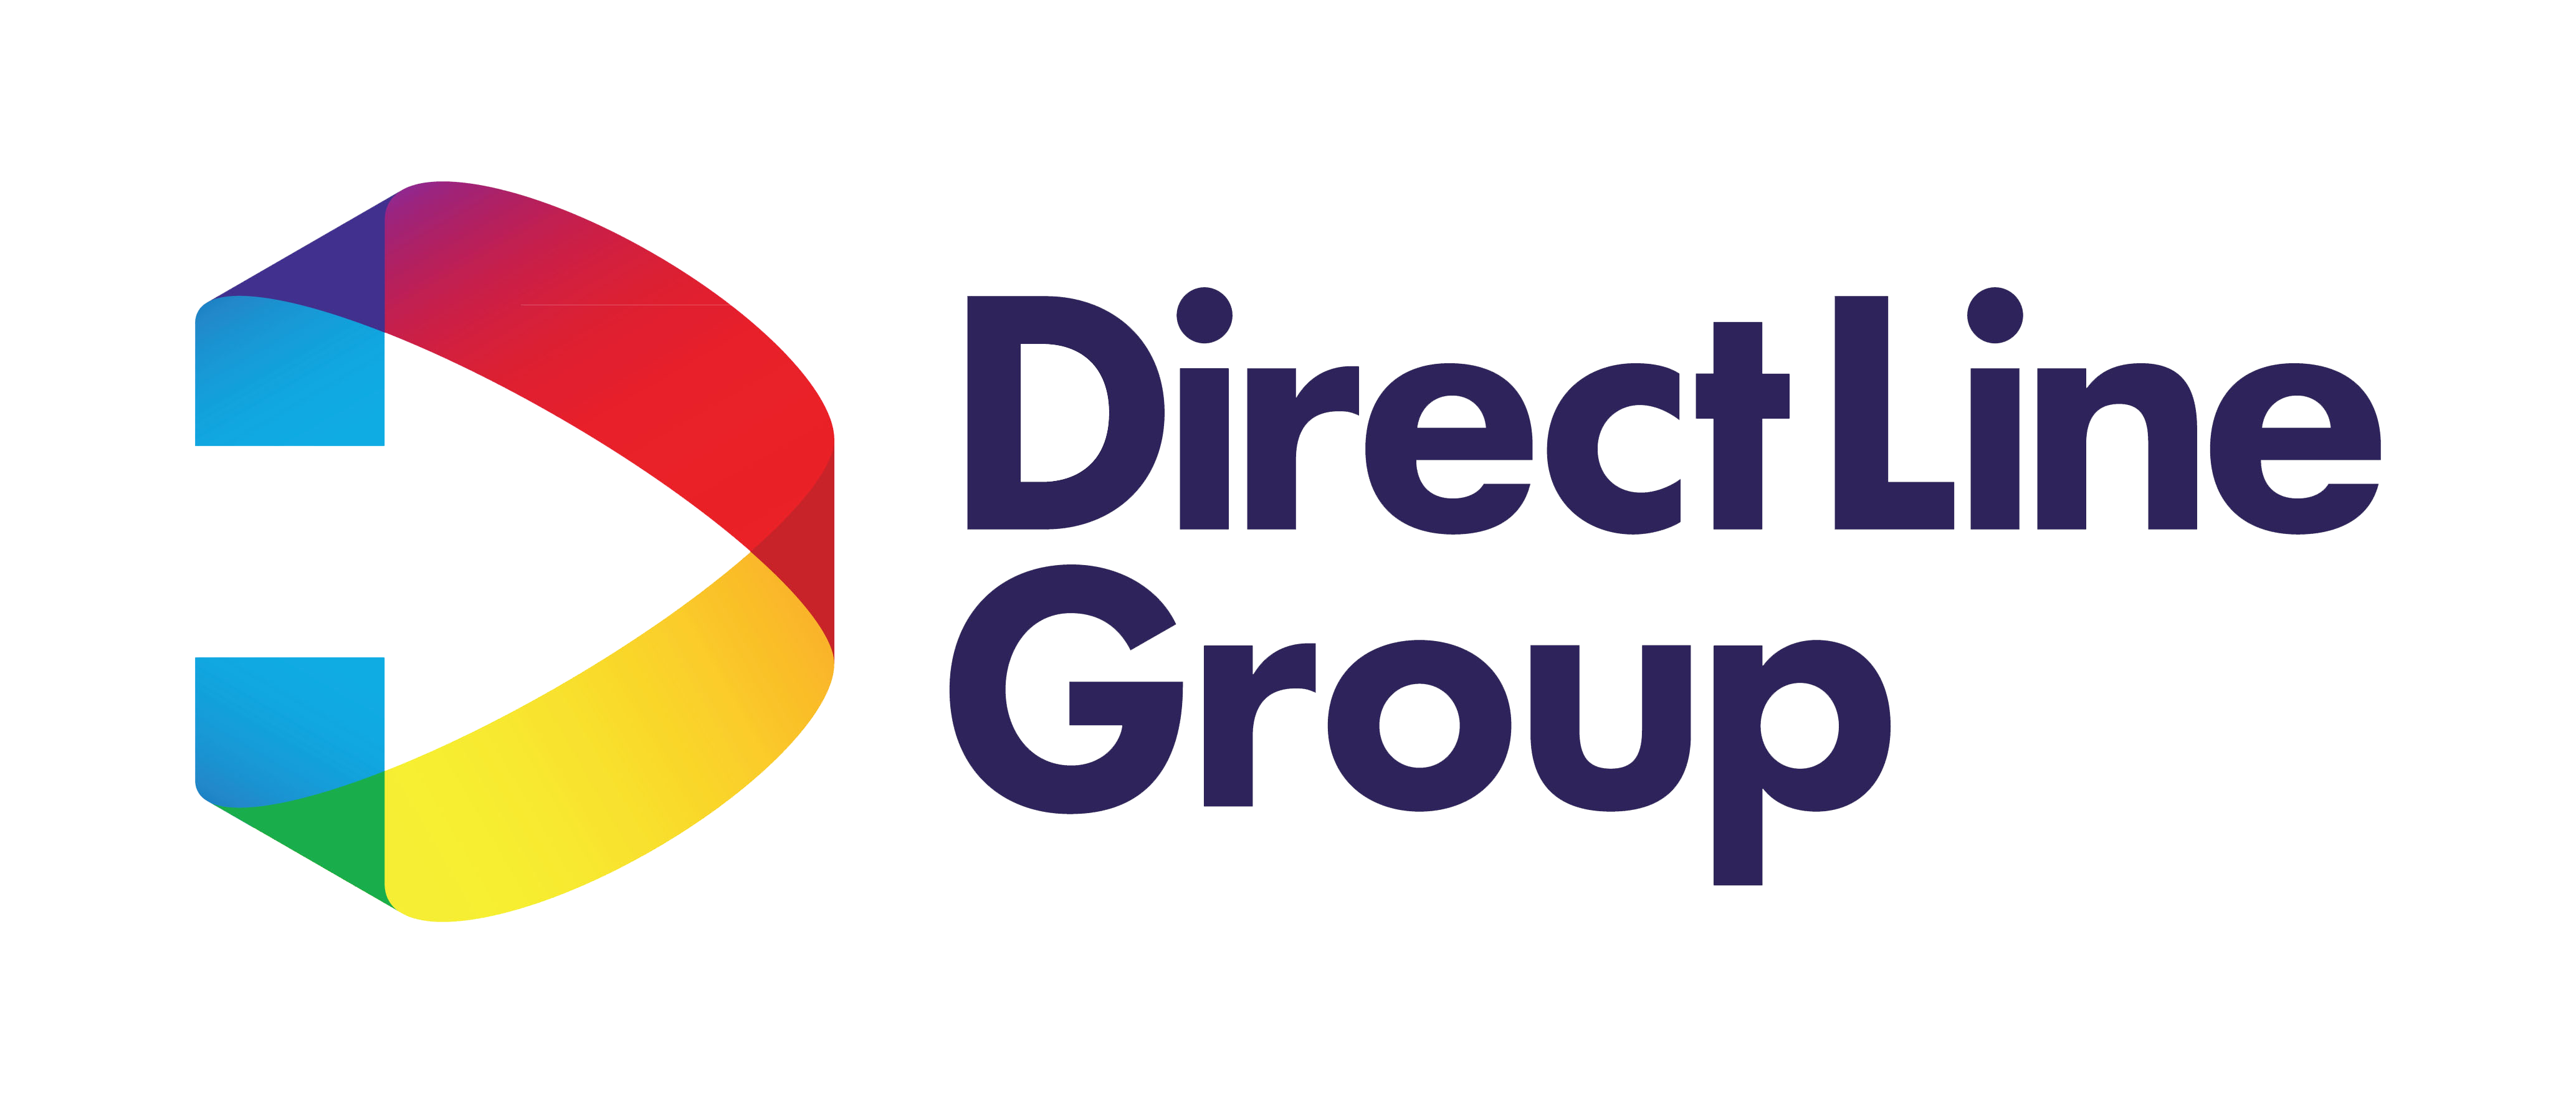 Direct line group logo